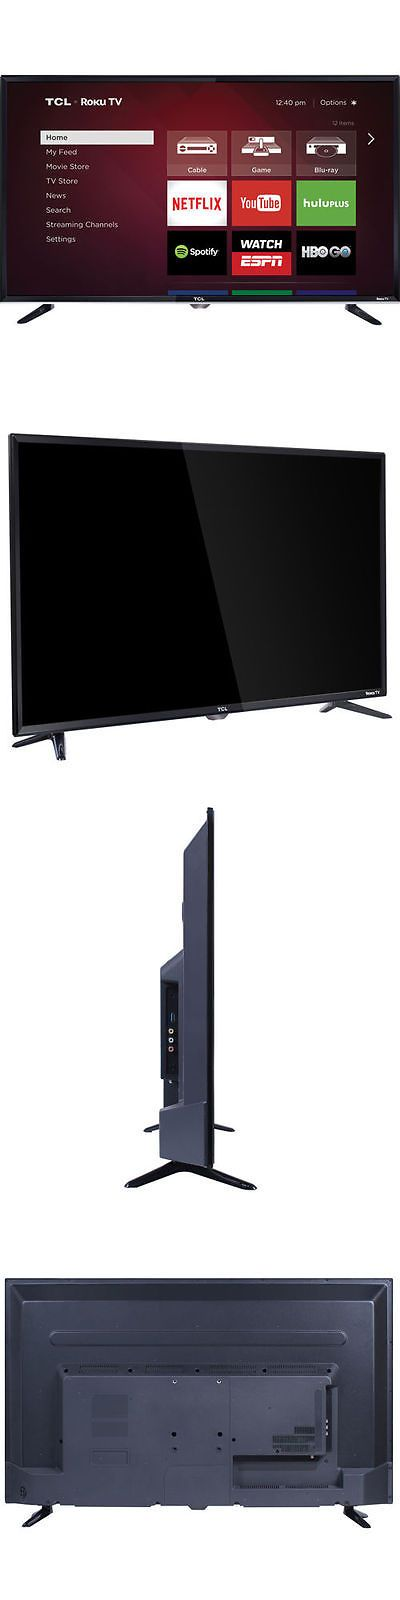 Televisions: Tcl 40 Class (40 Diag.) 1080P Roku Led Lcd Tv 40Fs3750 BUY IT NOW ONLY: $279.99